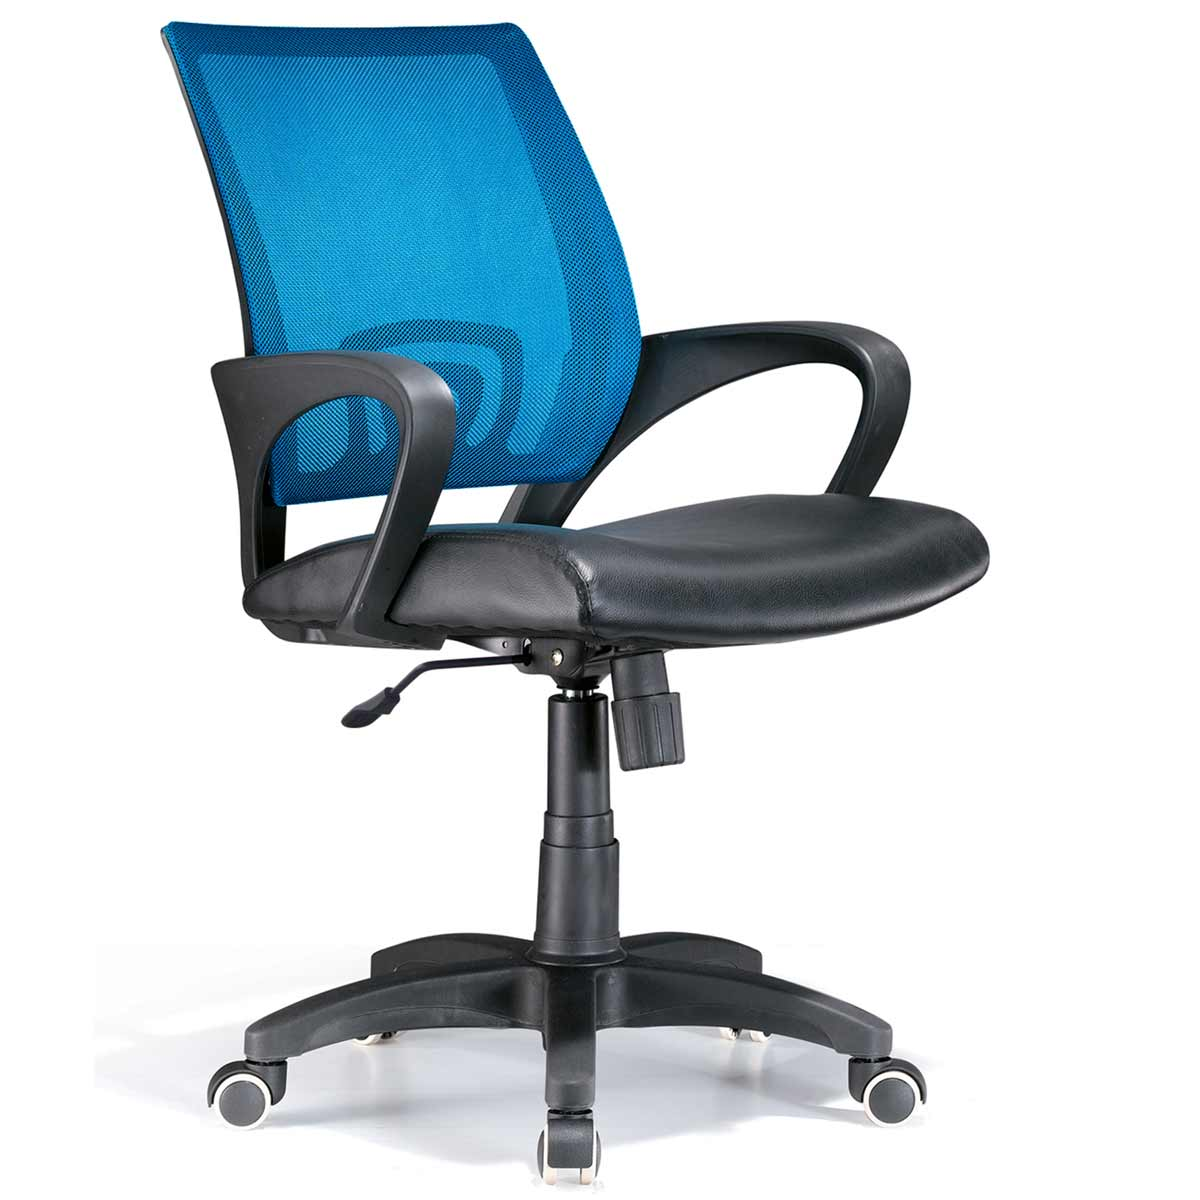 Home Office Desk Chair Desk Chairs Gaming Home Decoration Club